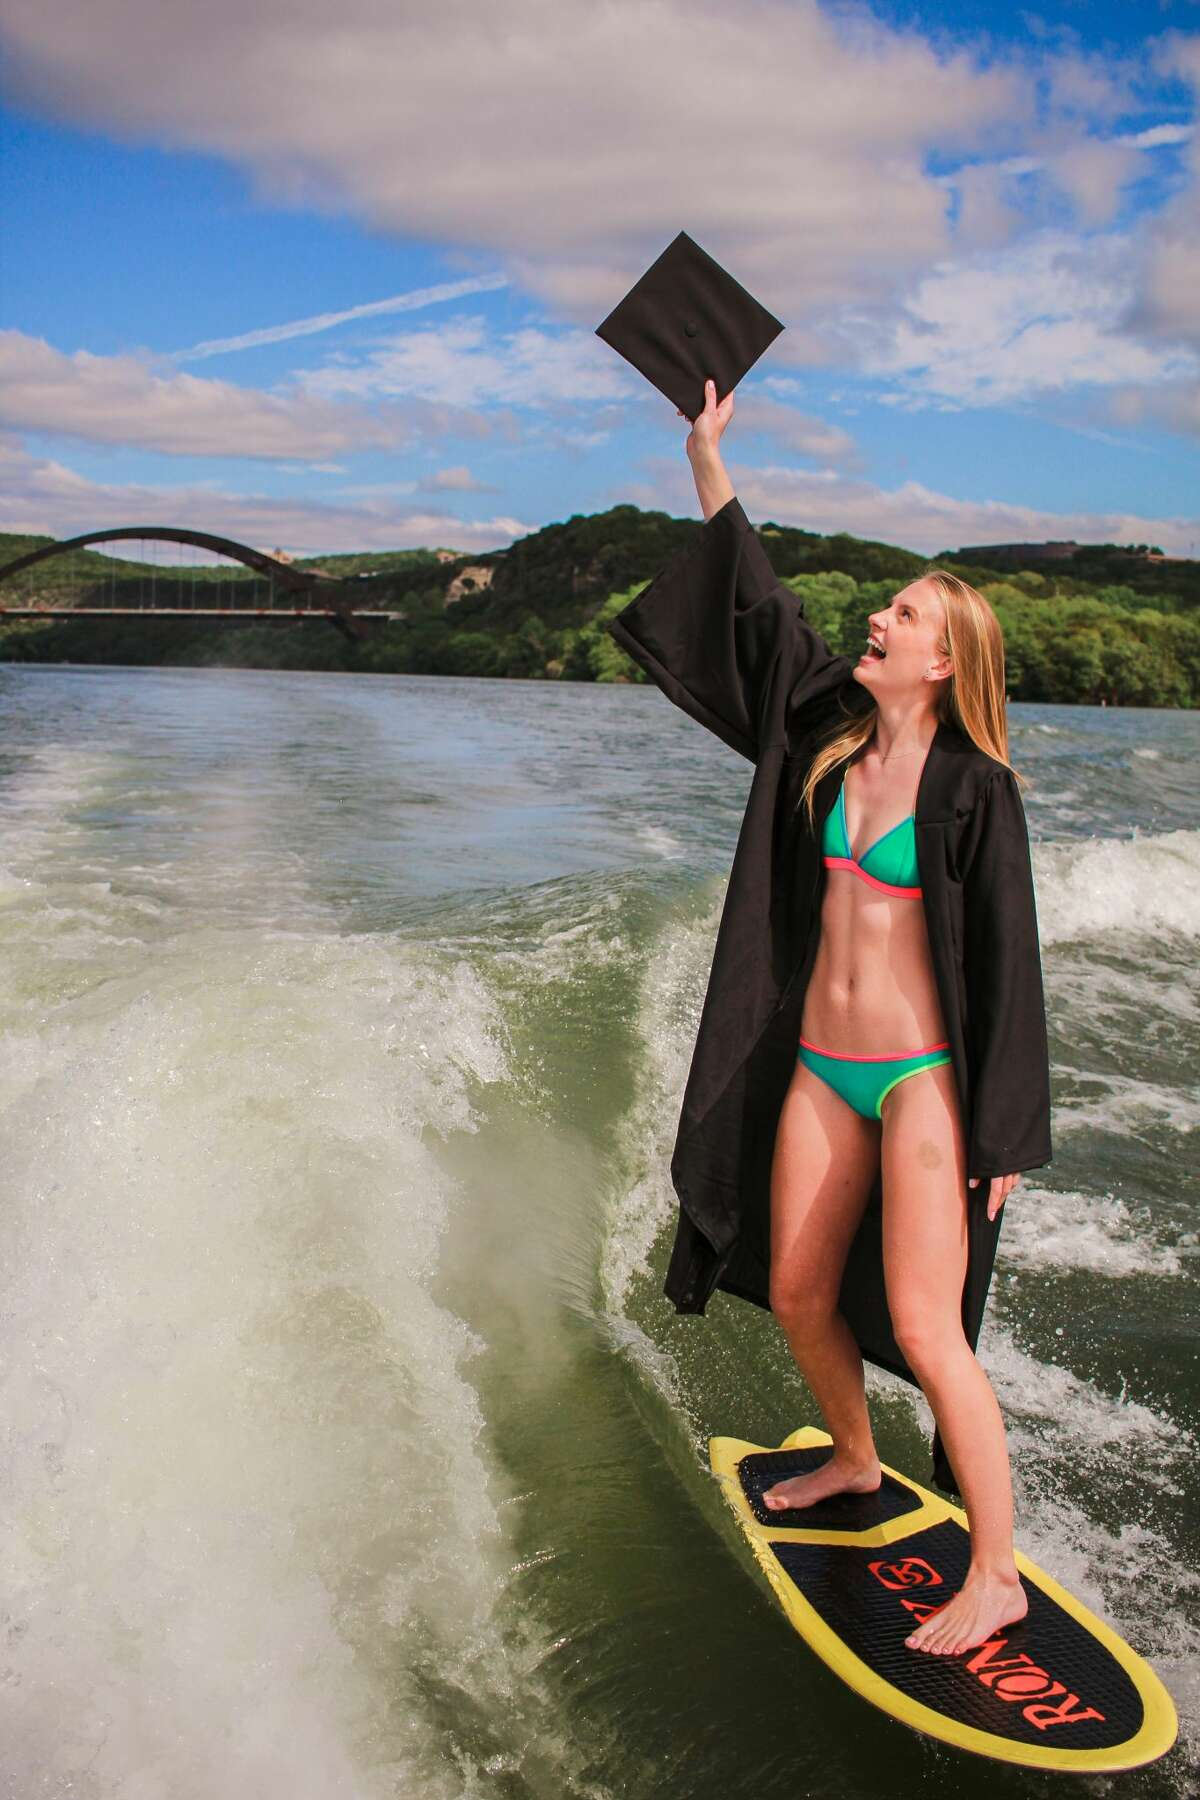 Carly Morris, a senior at the University of Texas in Austin, took her senior photos while wakeboarding.